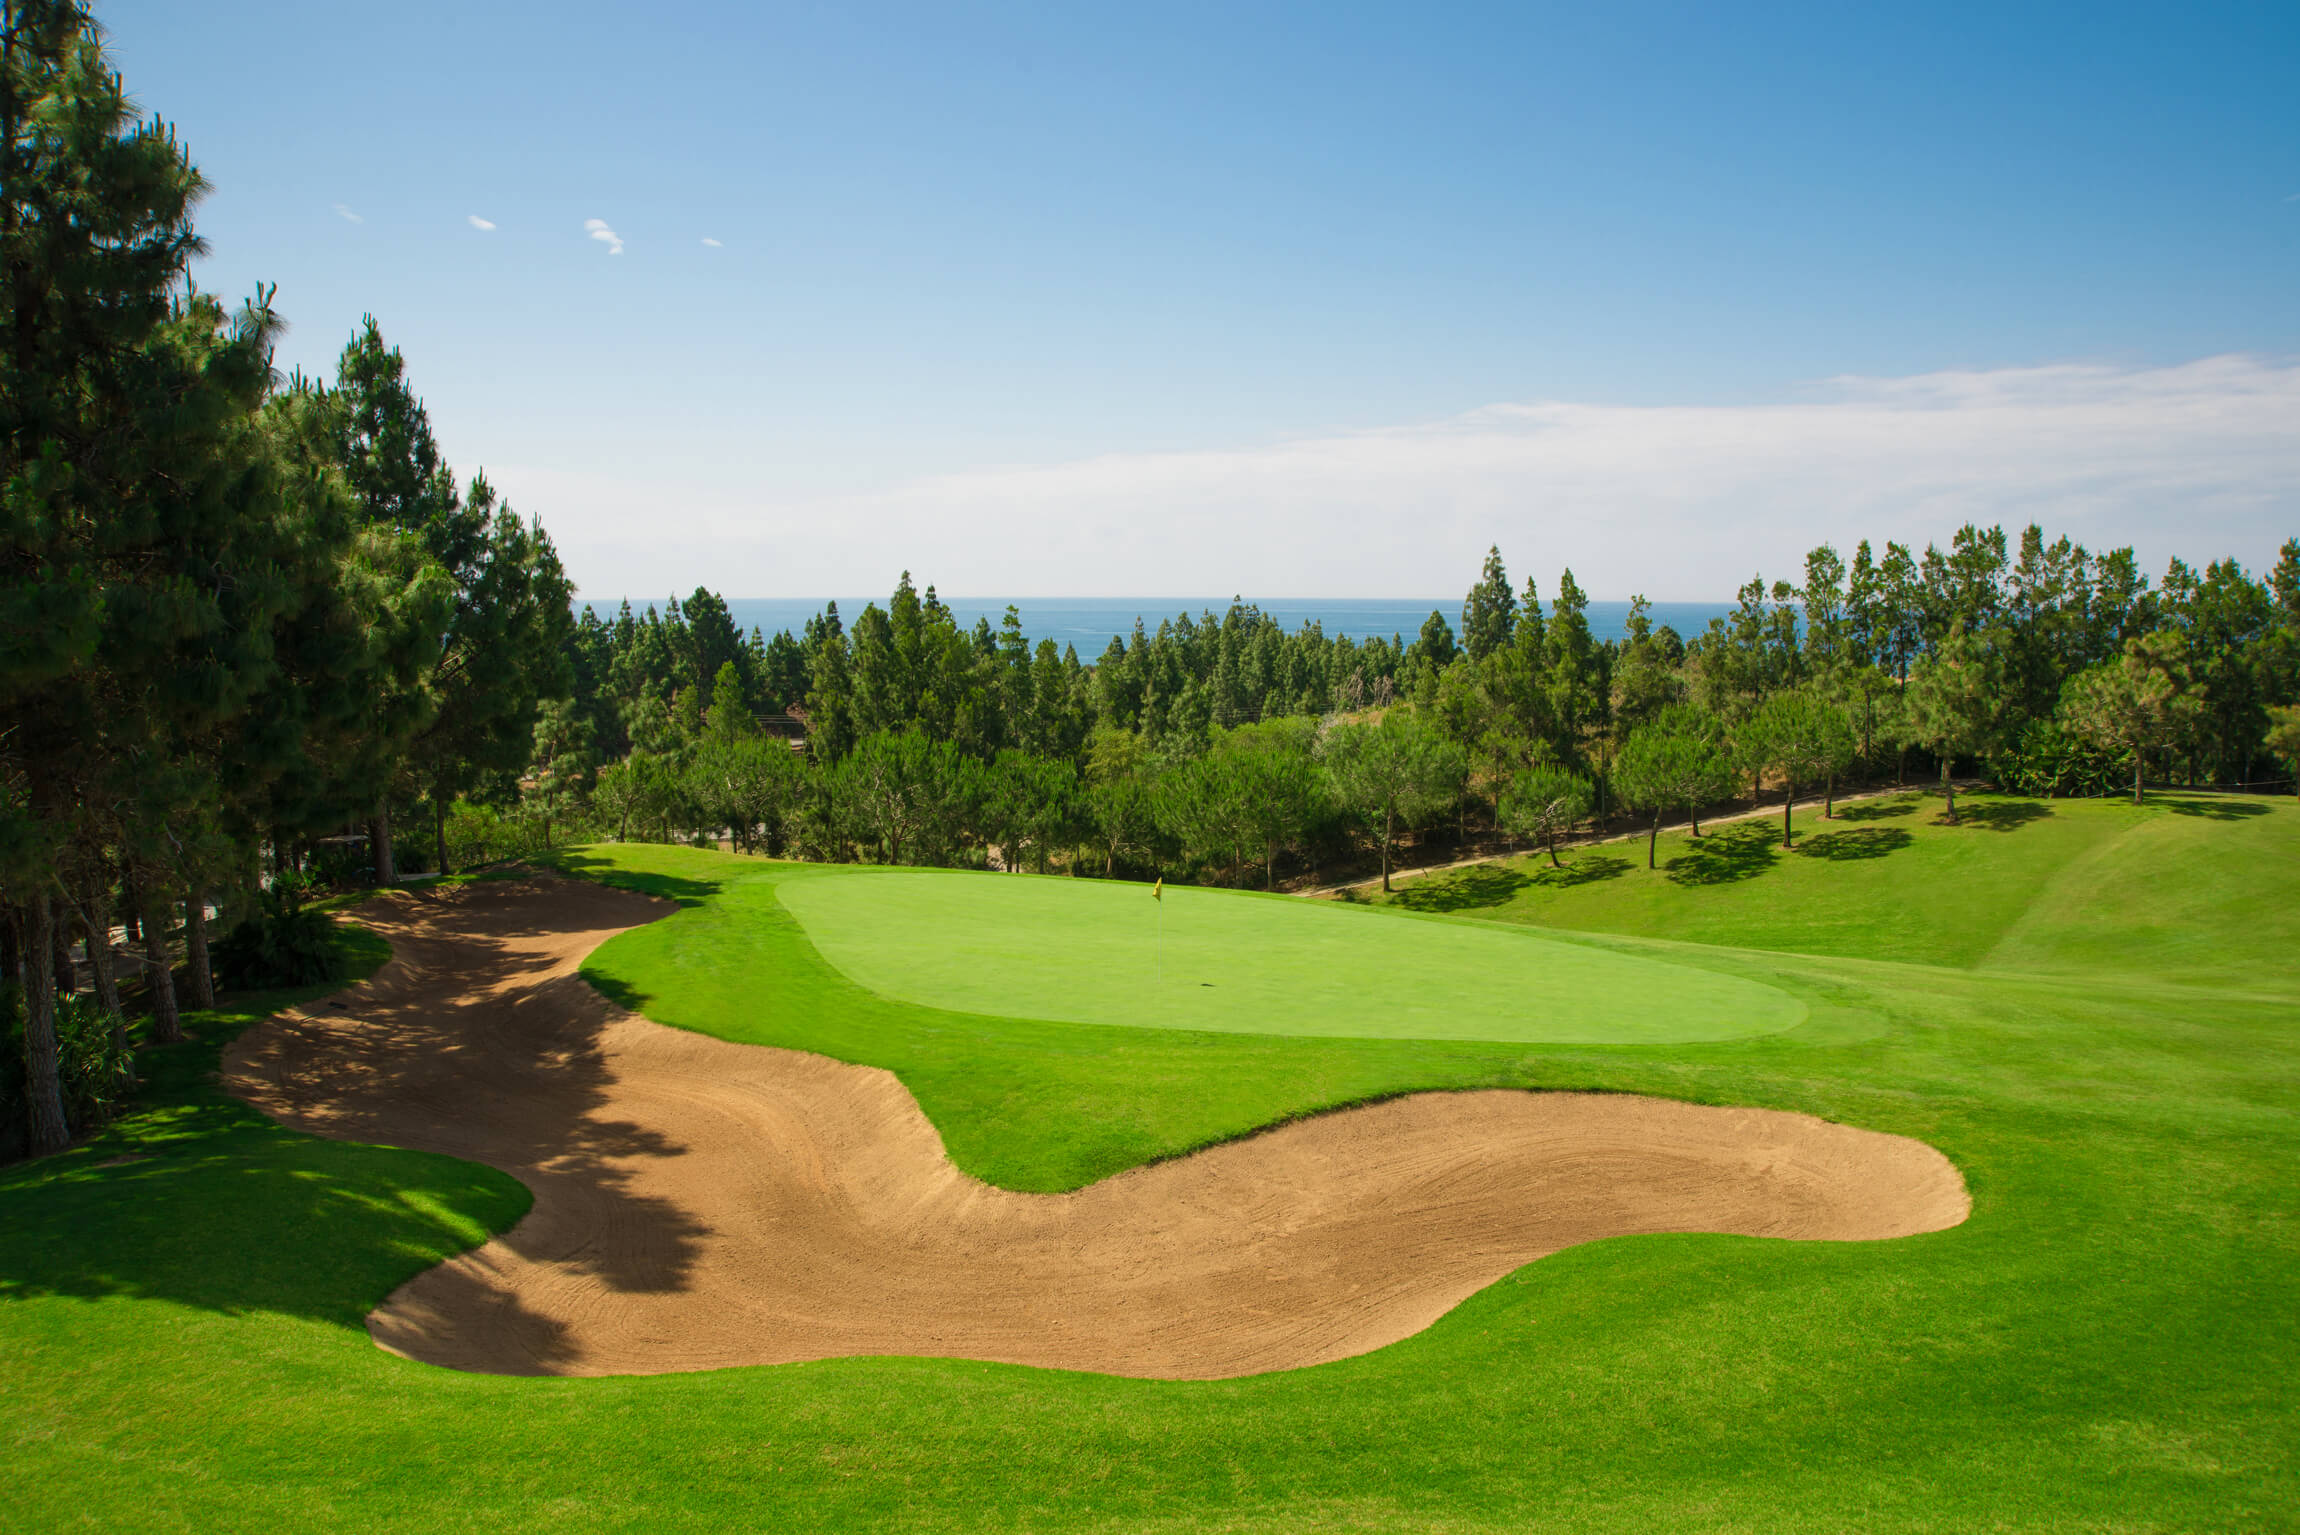 Chaparral Golf Club, Mijas, Costa del Sol, hoyo 9